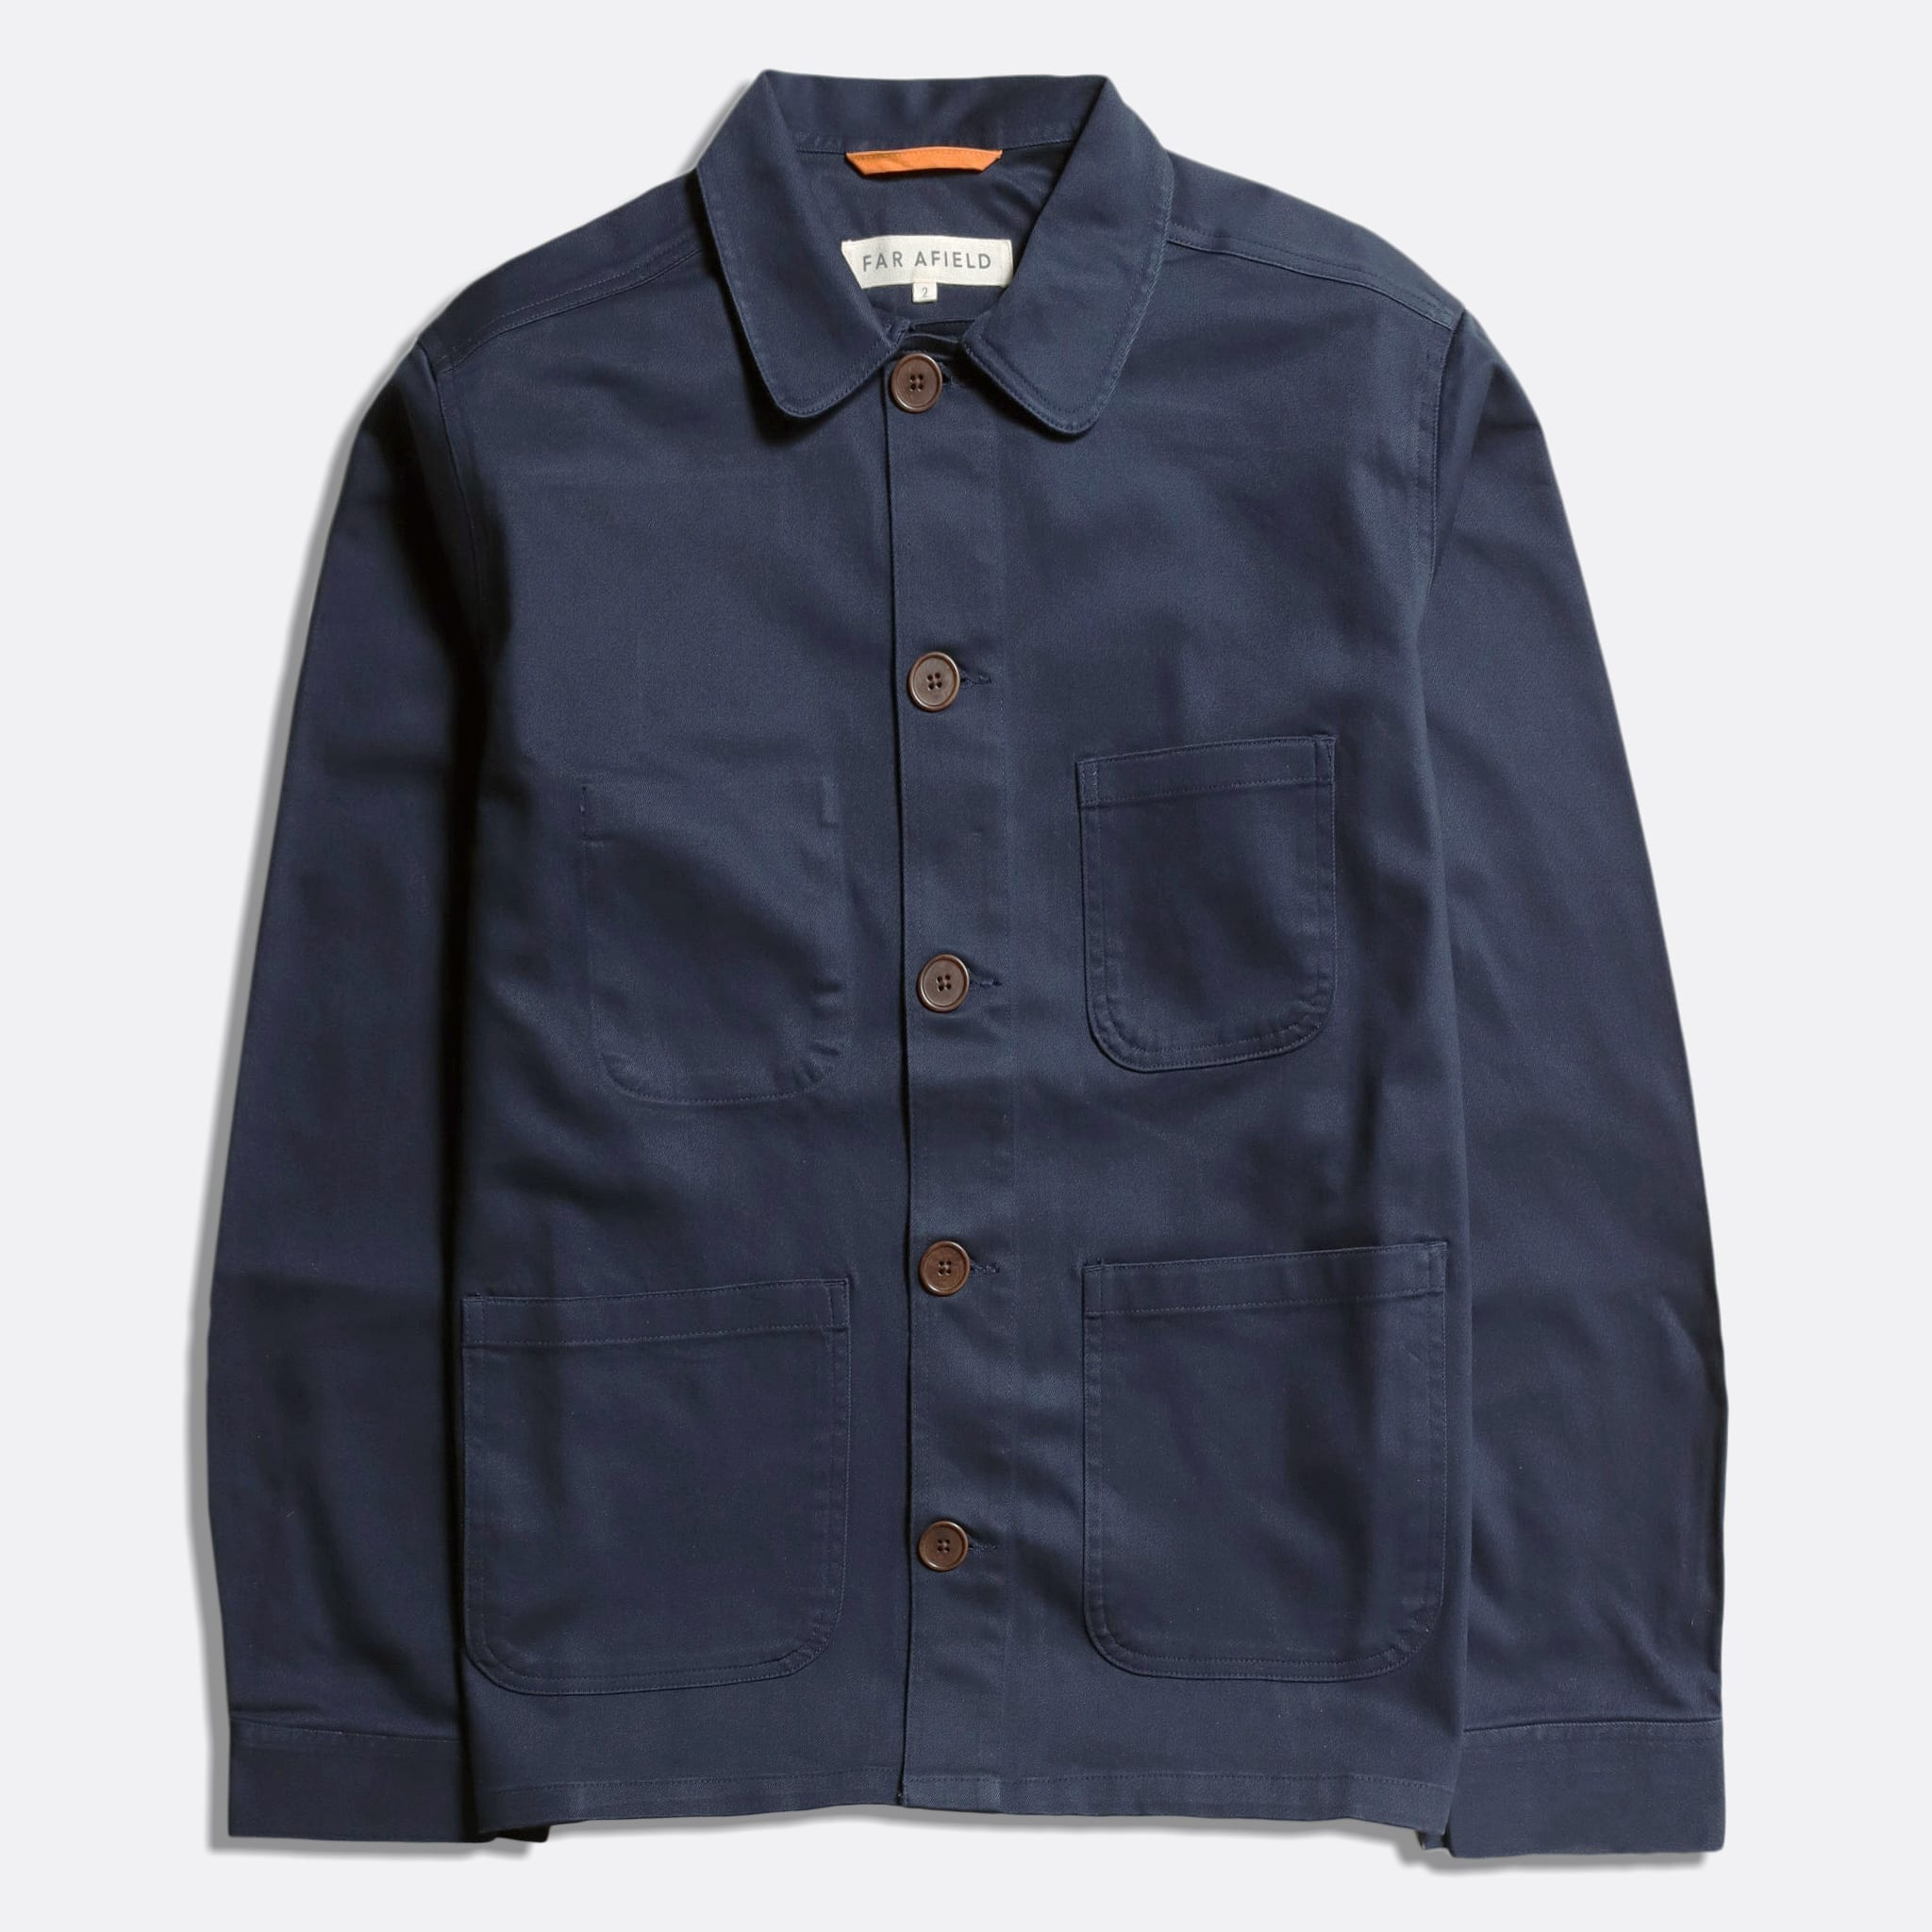 Far Afield Station Jacket a Ensign Blue Organic Cotton Twill Fabric Lightweight Utility Overshirt Classic Work